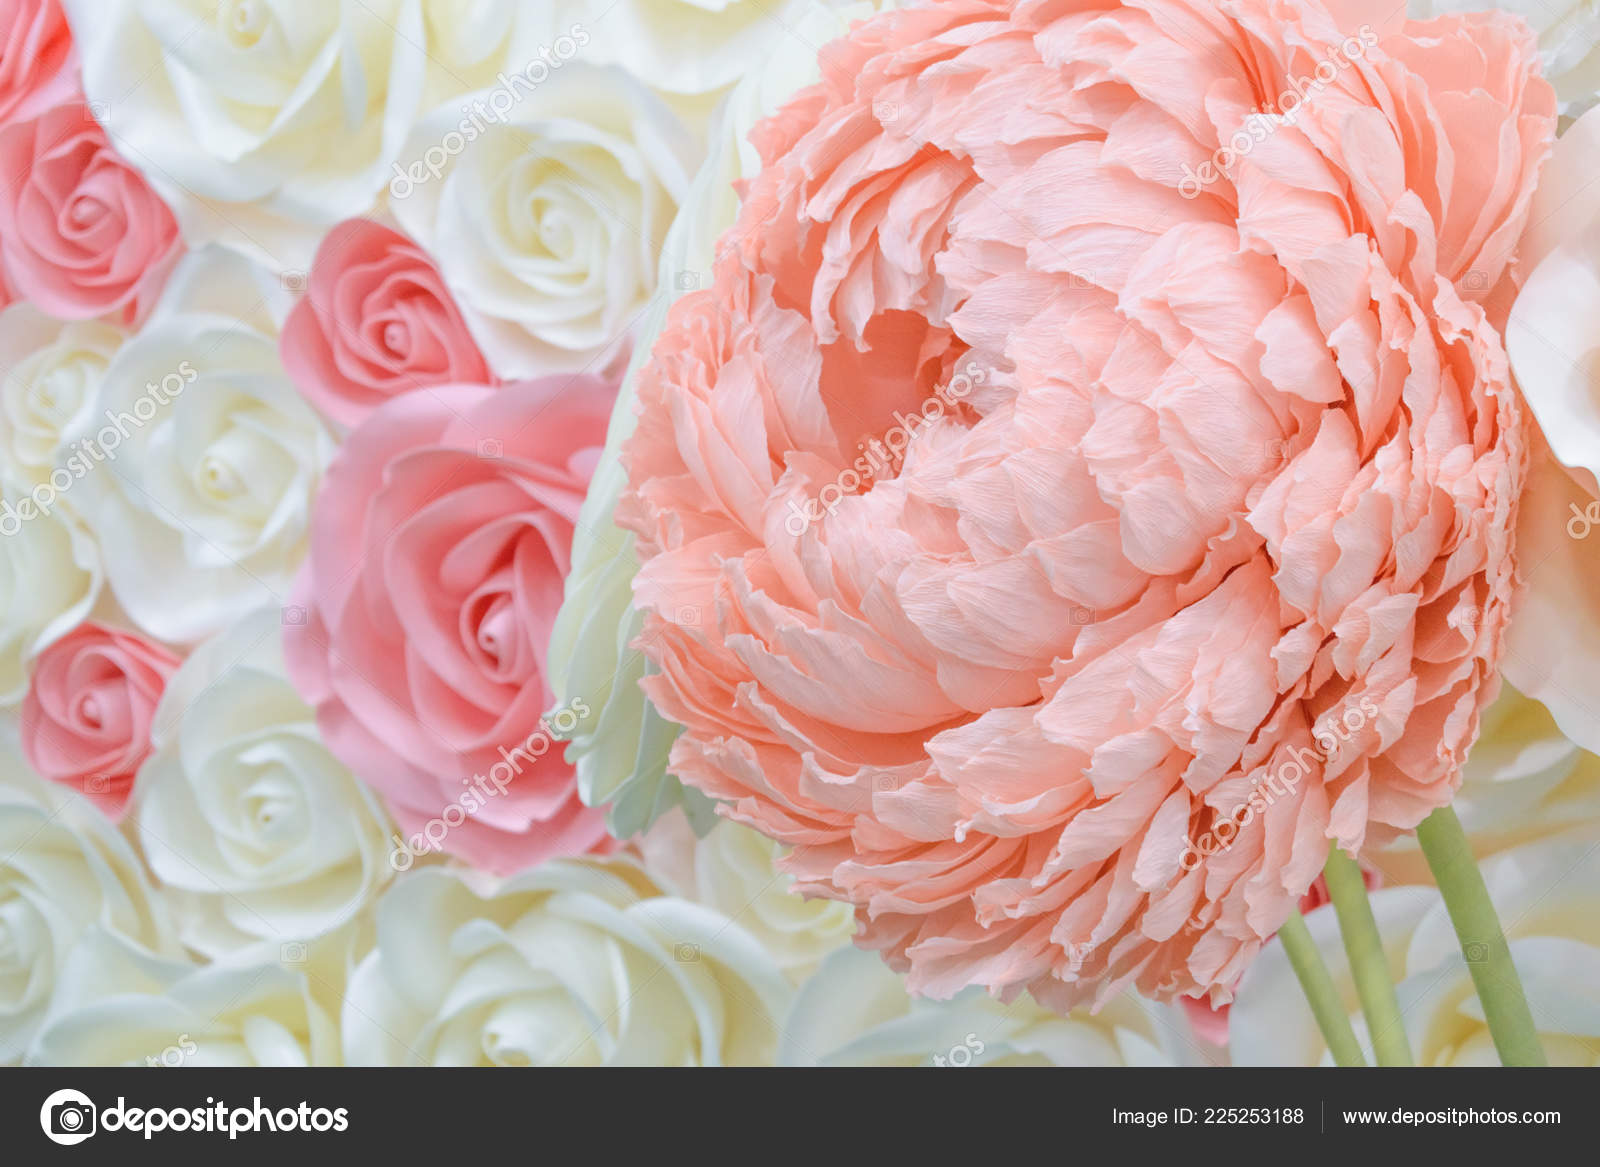 Large Giant Paper Flowers Big Pink White Beige Rose Peony Stock